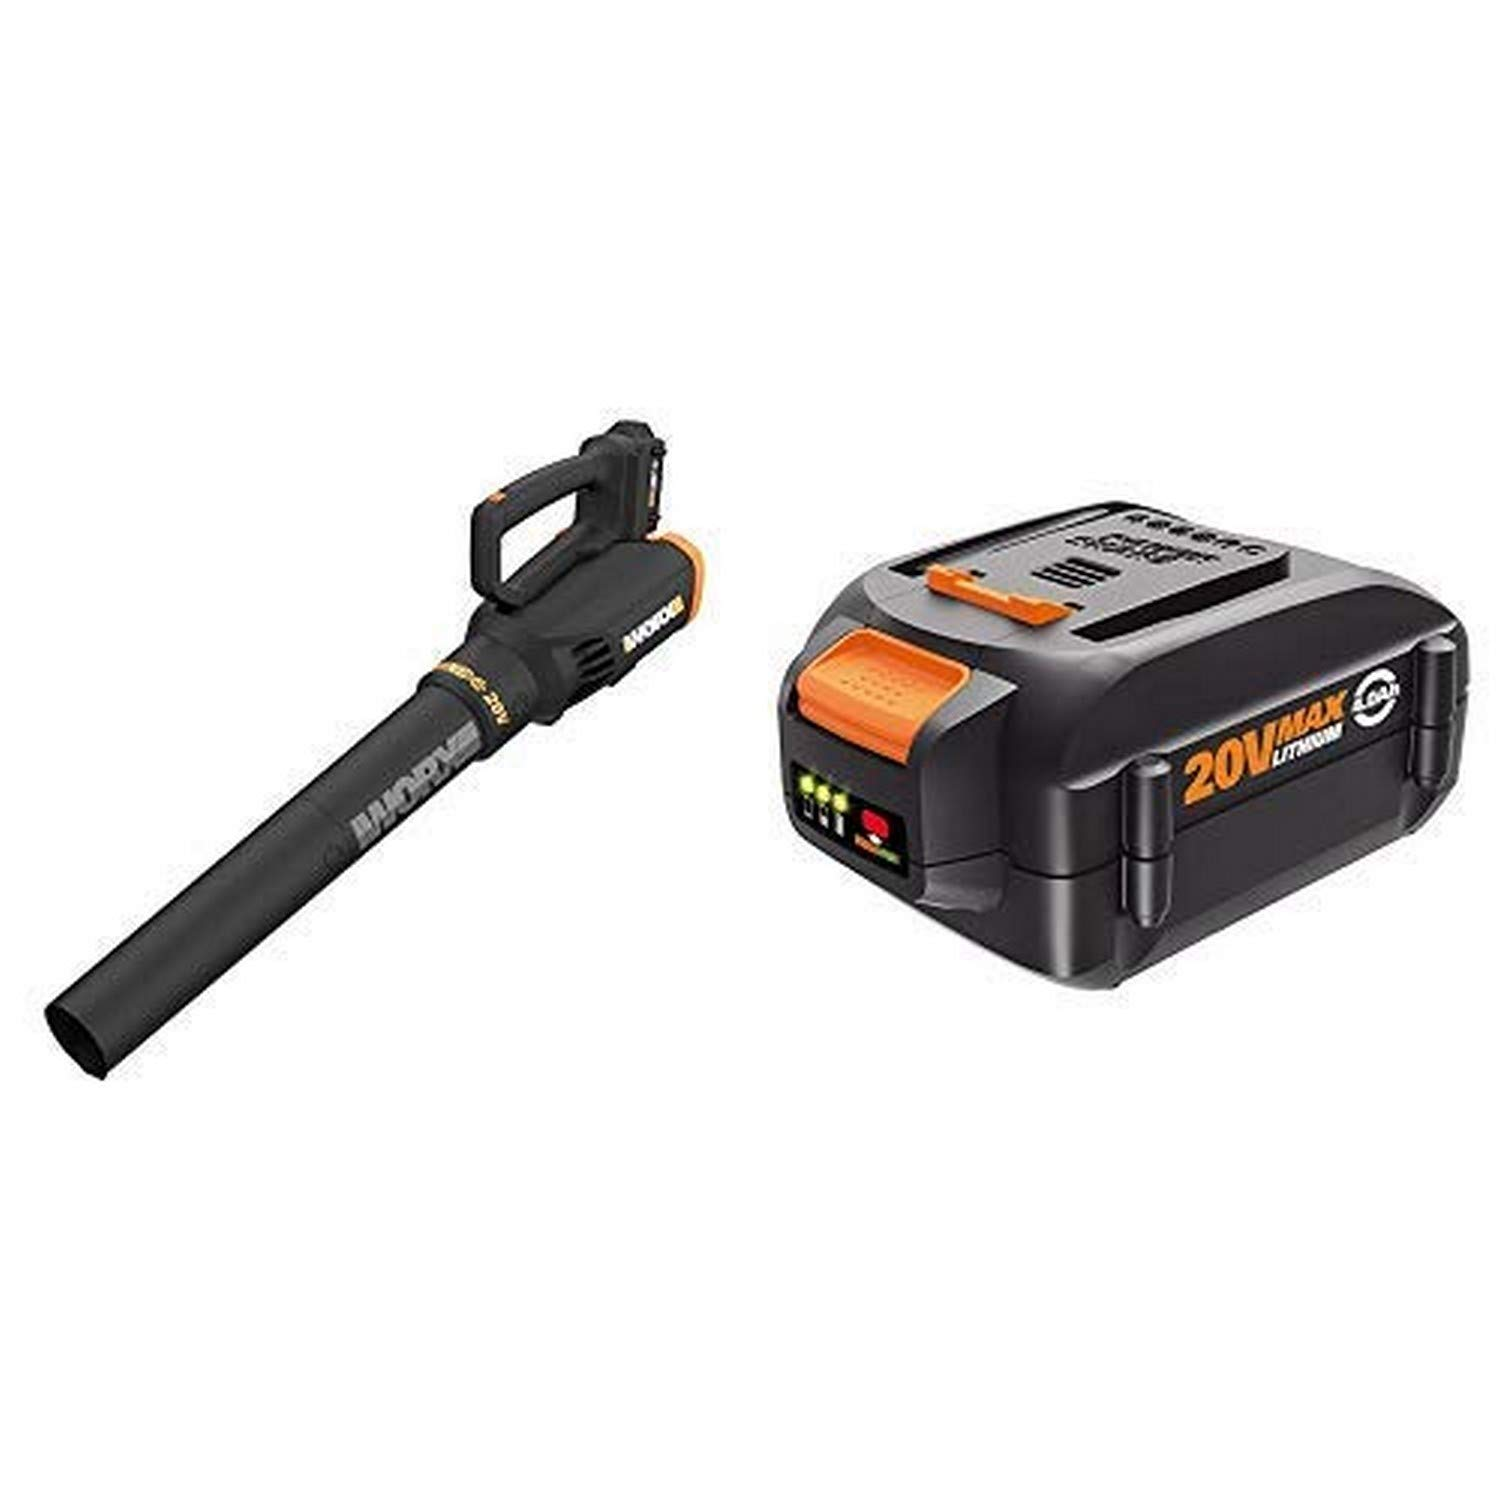 WORX WG547 20V (2.0Ah) Power Share Cordless Turbine Blower, 2-Speed, Battery and Charger Included with WA3578 20V 4.0Ah